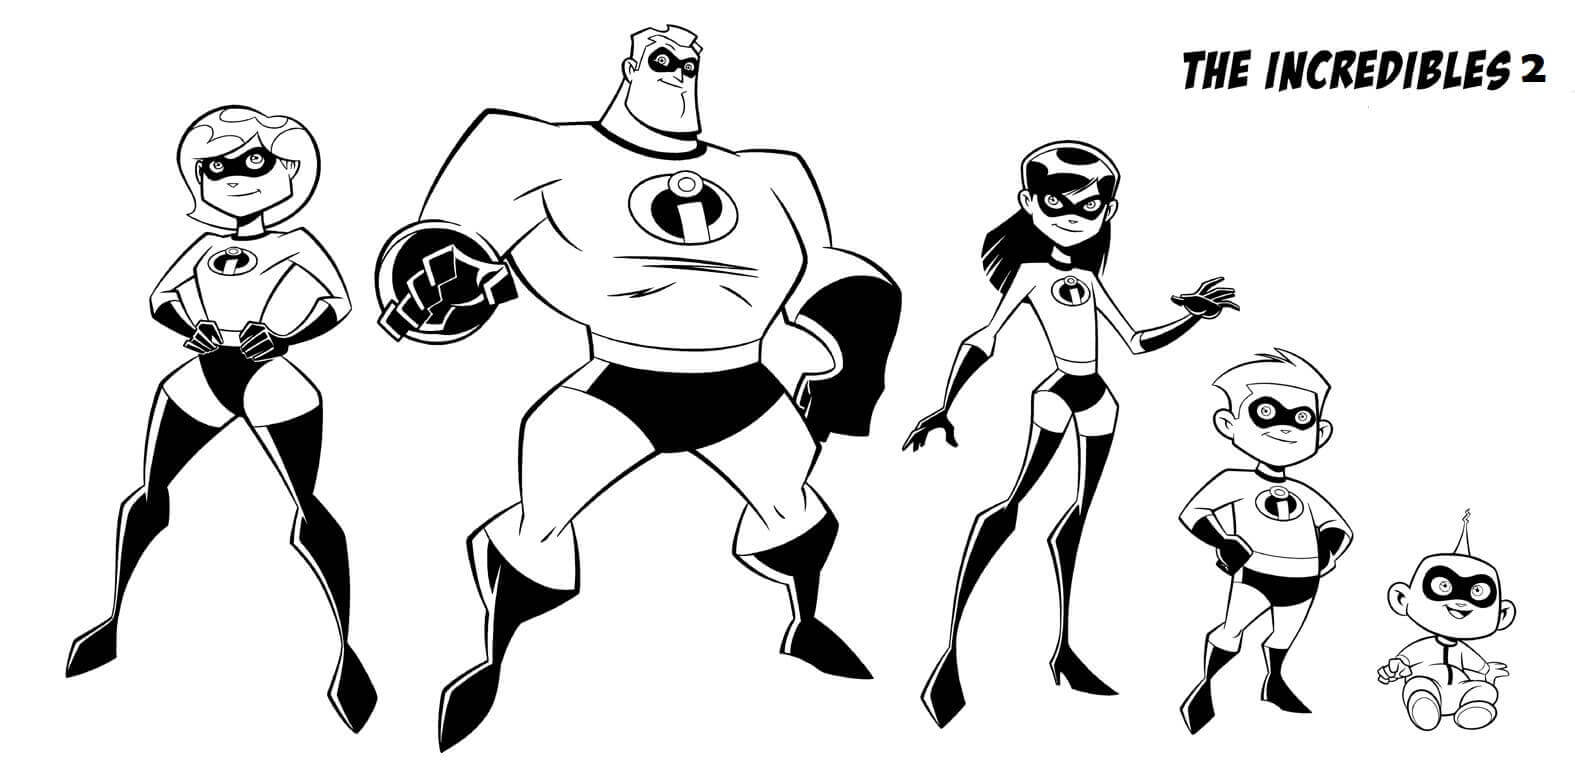 free printable incredibles 2 coloring pages free printable incredibles 2 coloring pages coloring incredibles printable pages free 2